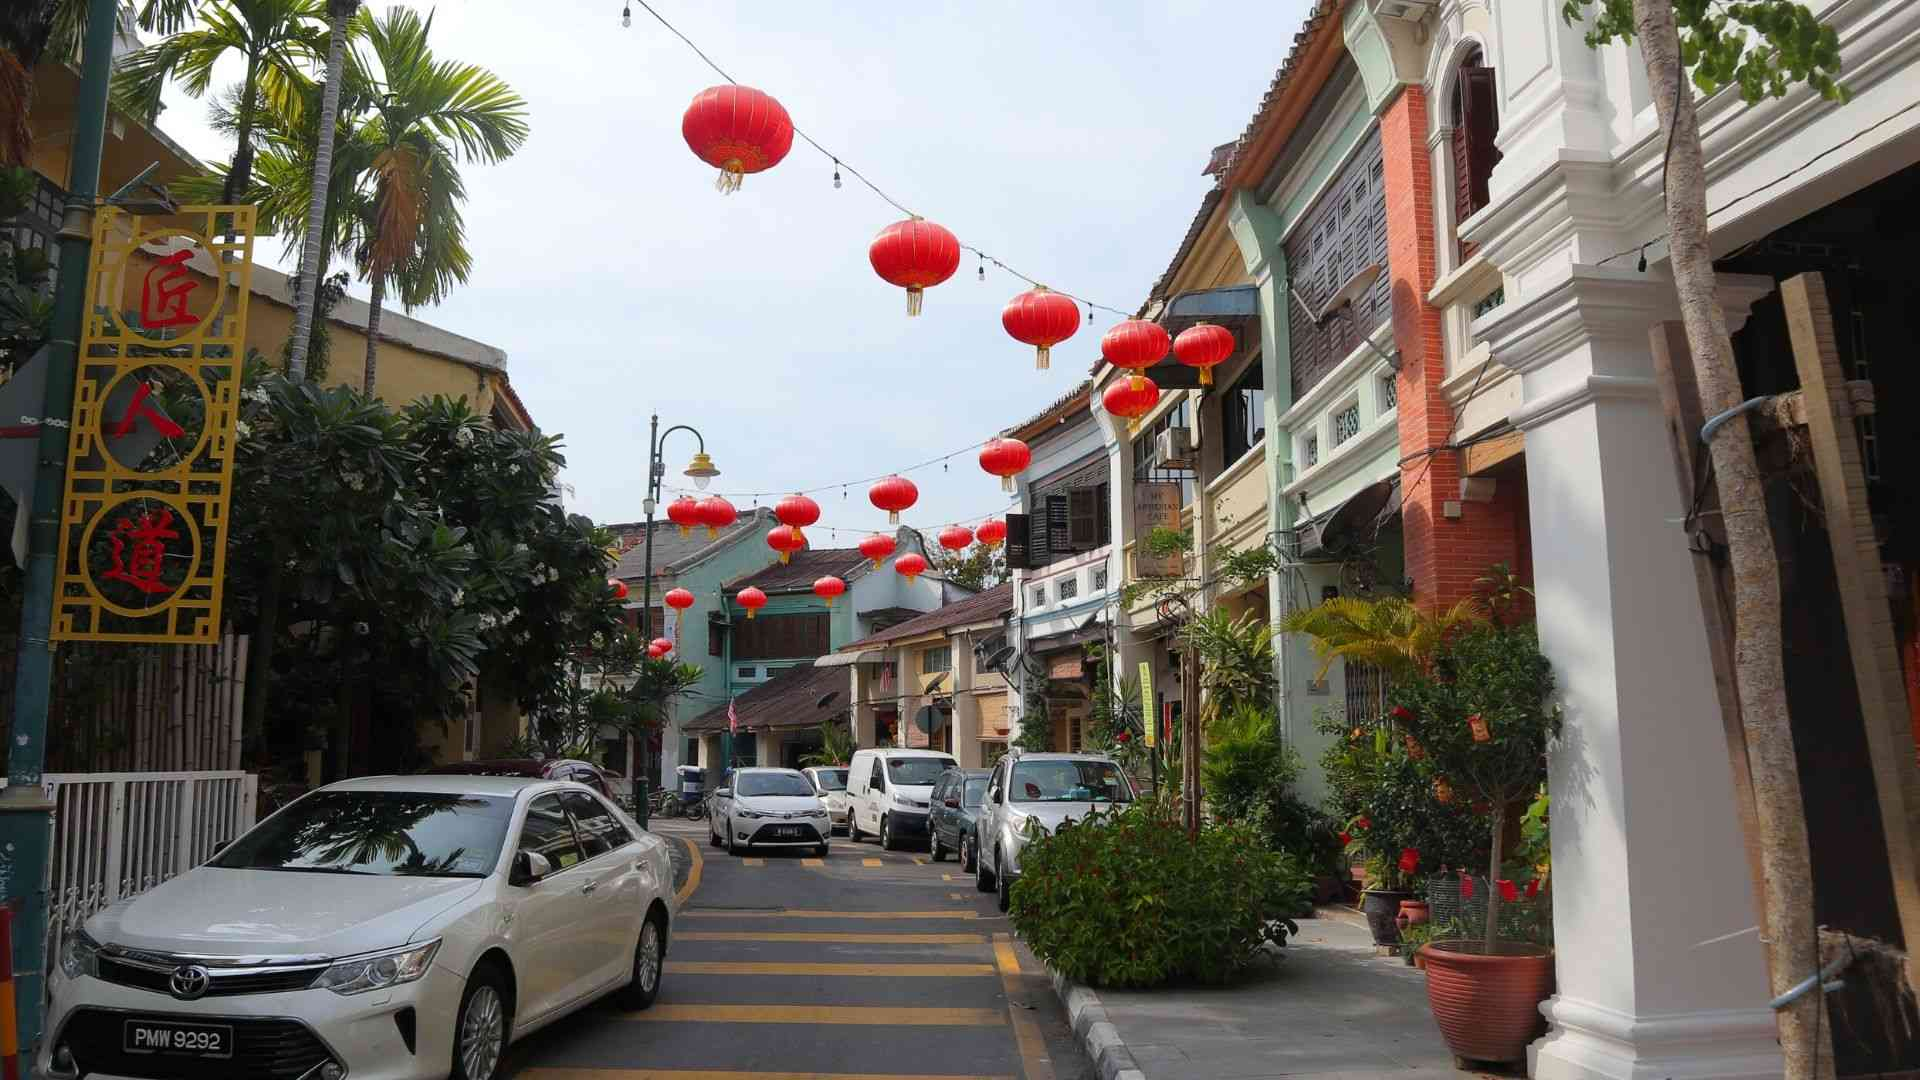 A street in the old center of Georgetown, Penang